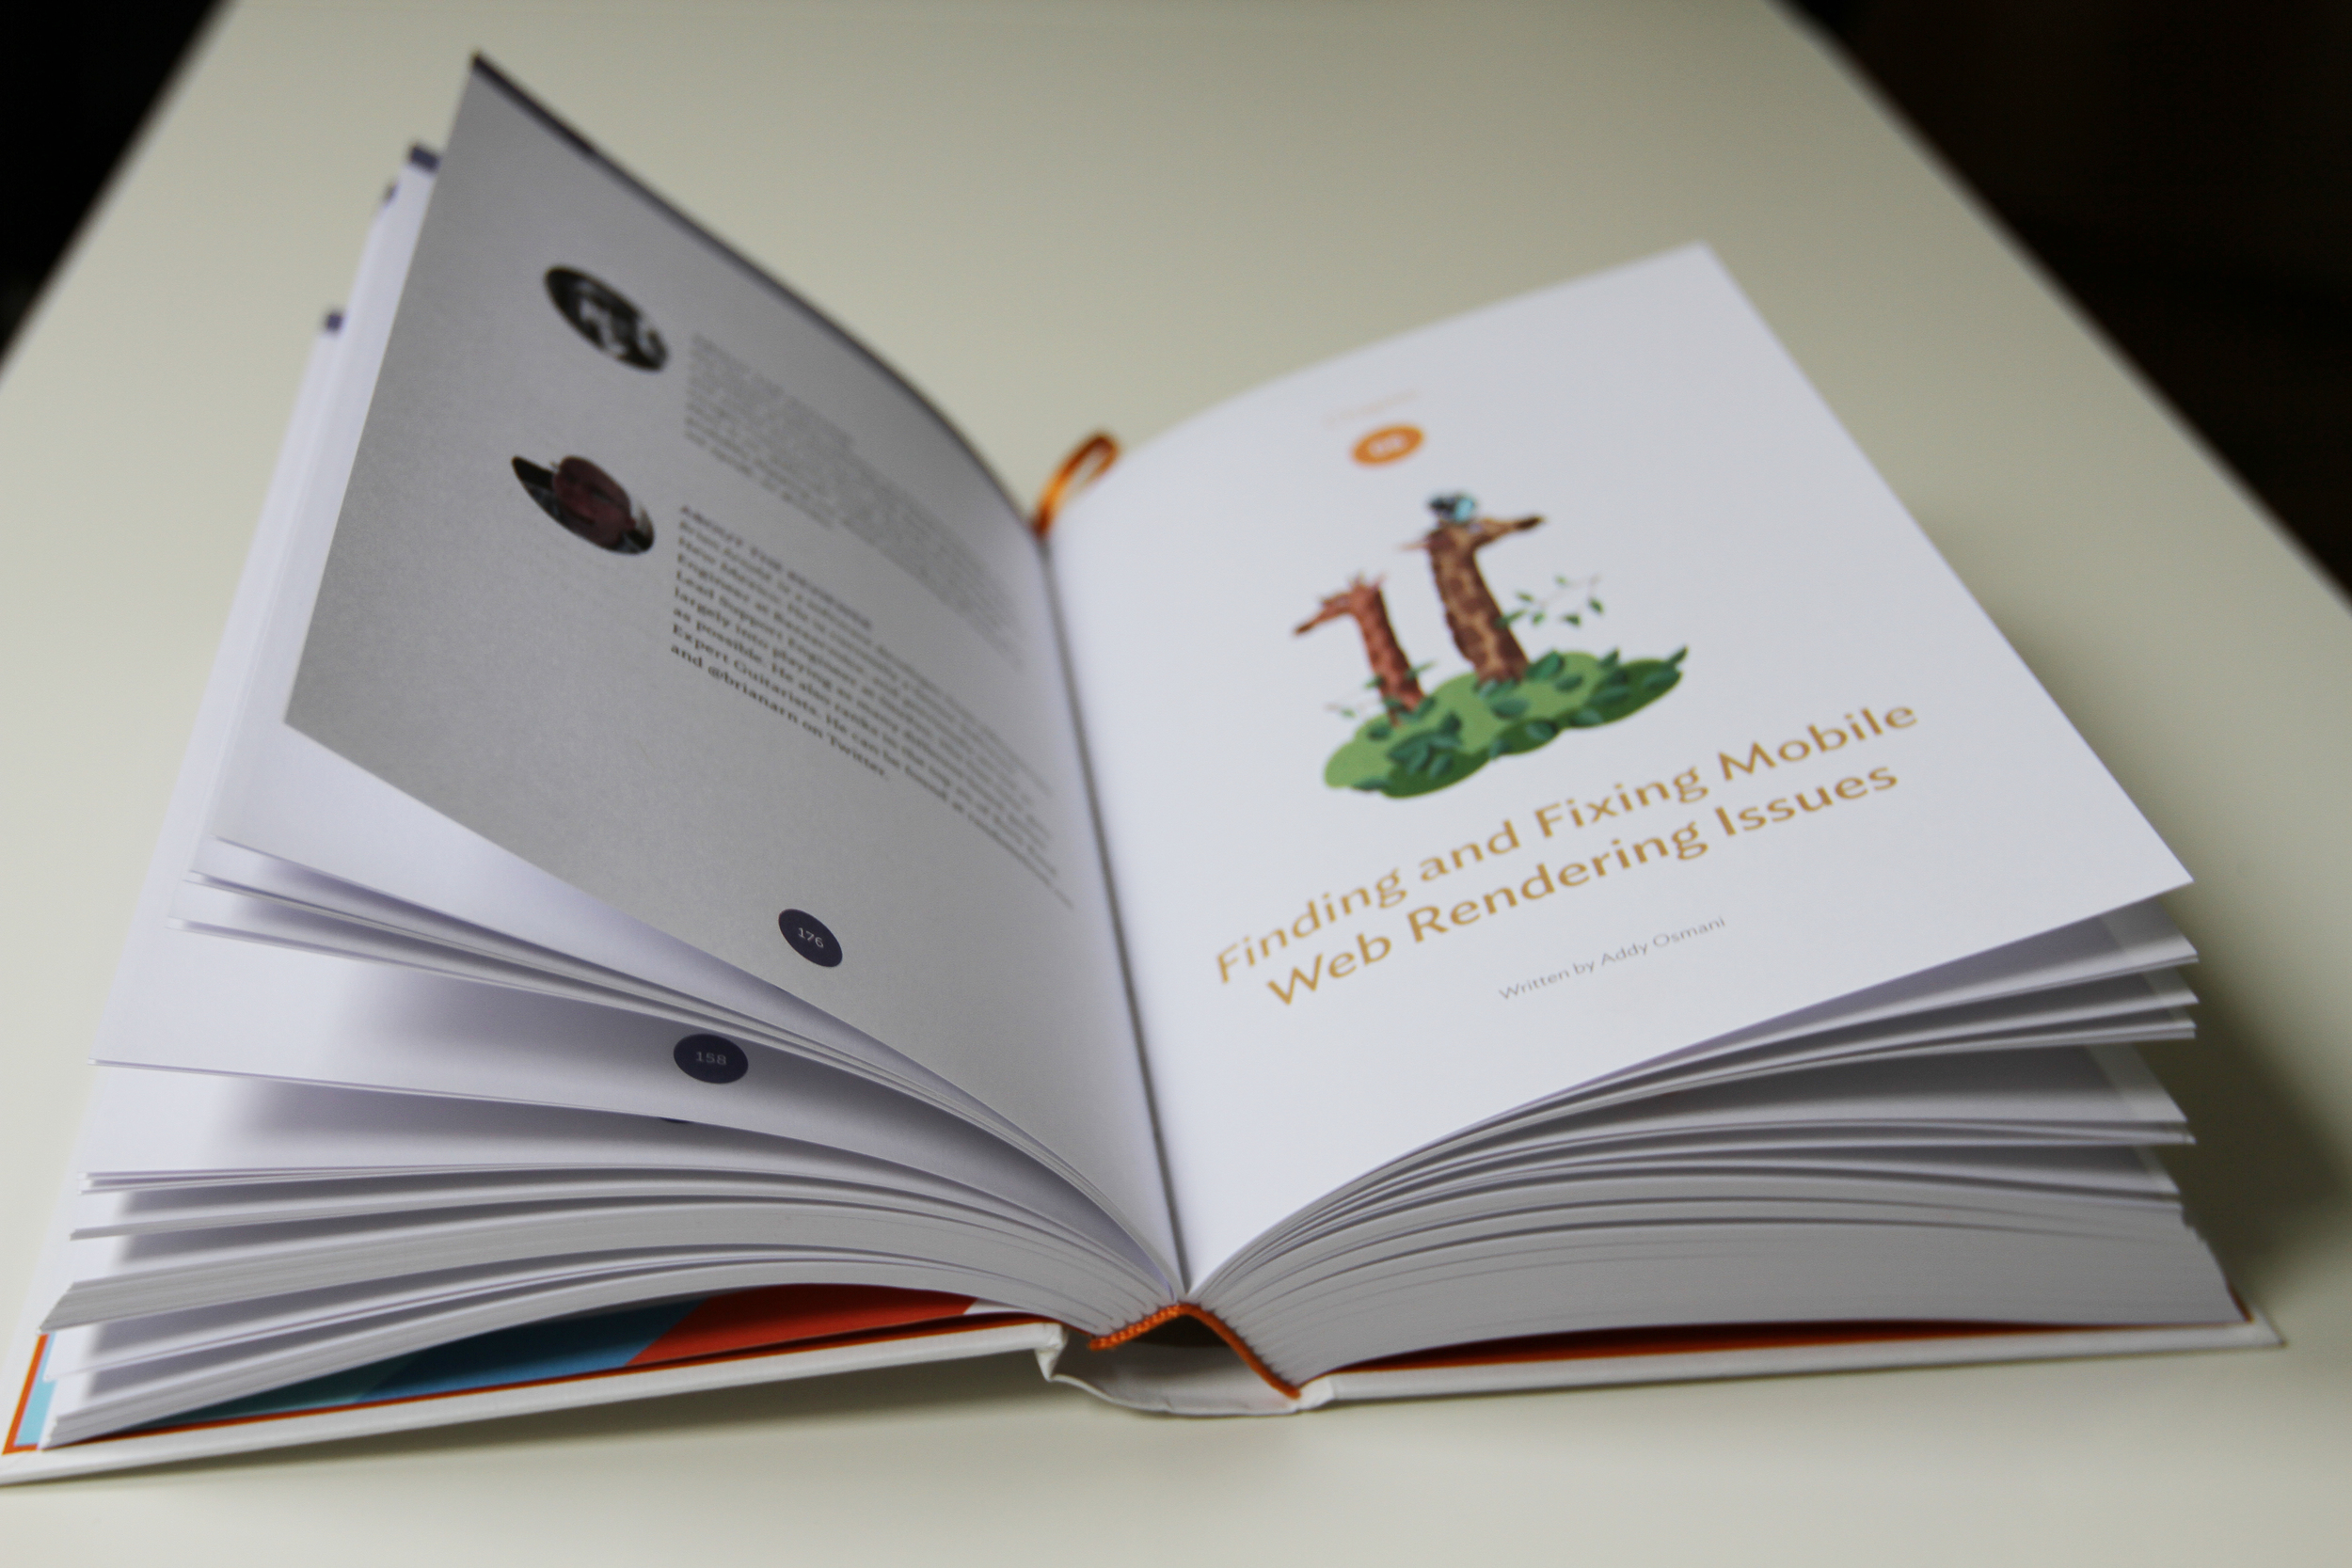 Each chapter features beautiful and meaningful illustrations by  Anna Shuvalova.